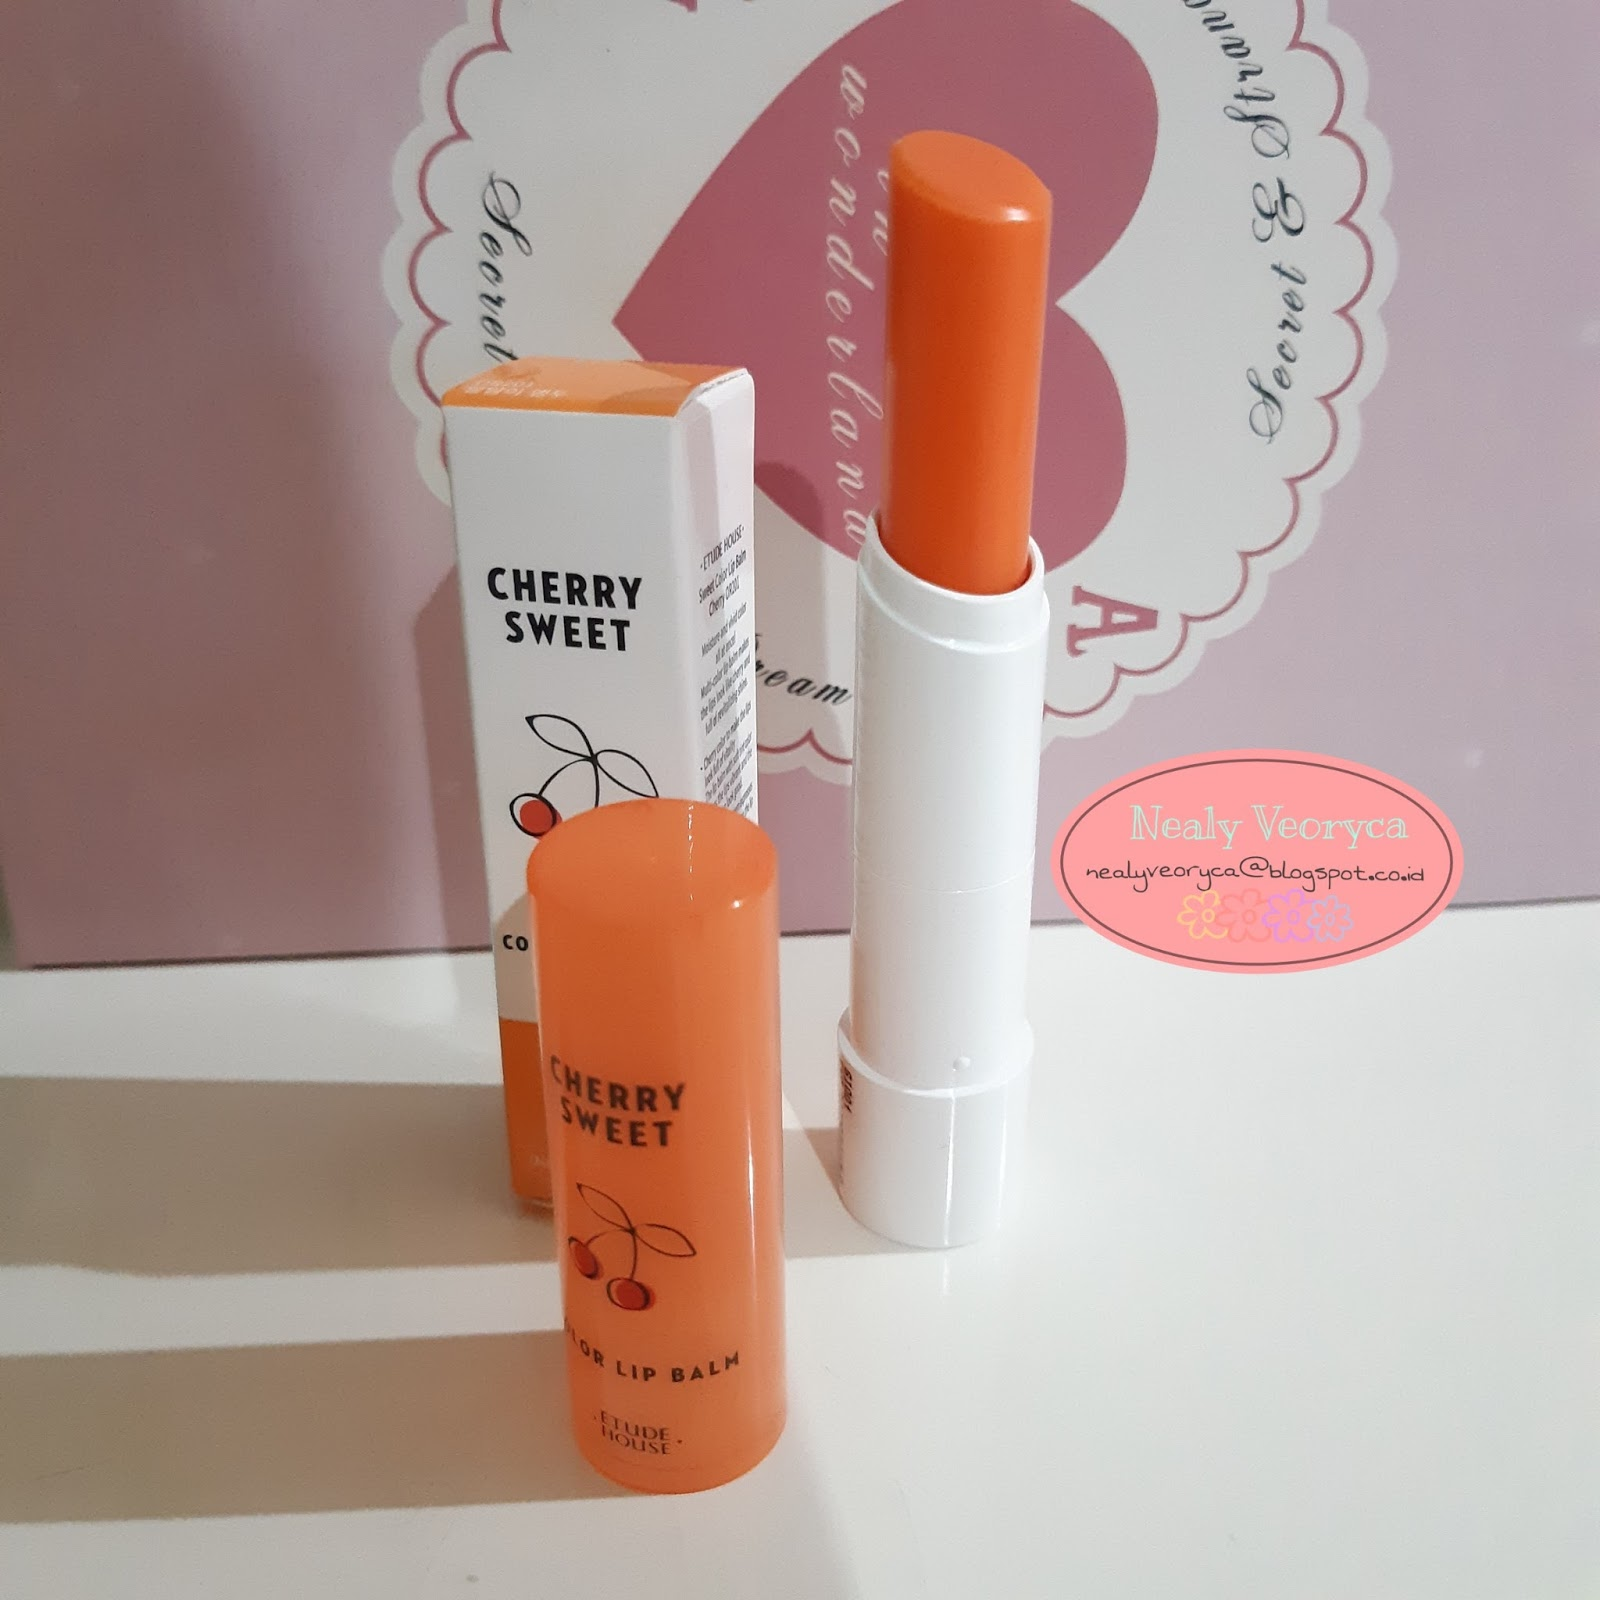 Nealy Veoryca Glow Tint Daring Goban X Molita Review Etude House Cherry Sweet Color Lip Balm Or201